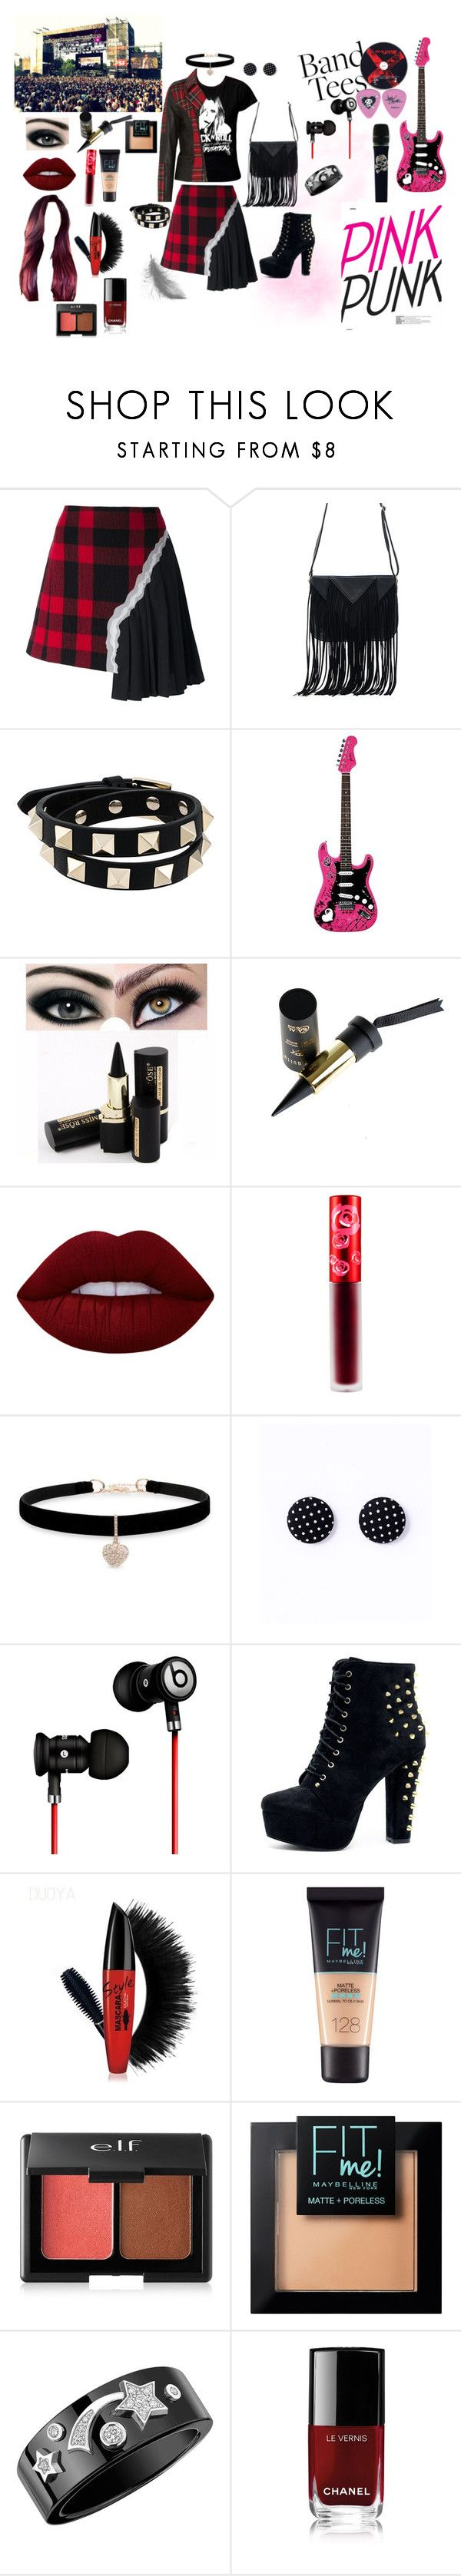 """""""Black is the new pink"""" by feliciamia on Polyvore featuring Karl Lagerfeld, Maison Margiela, WithChic, Valentino, Lime Crime, Betsey Johnson, Beats by Dr. Dre, Free People, Maybelline and Forever 21"""